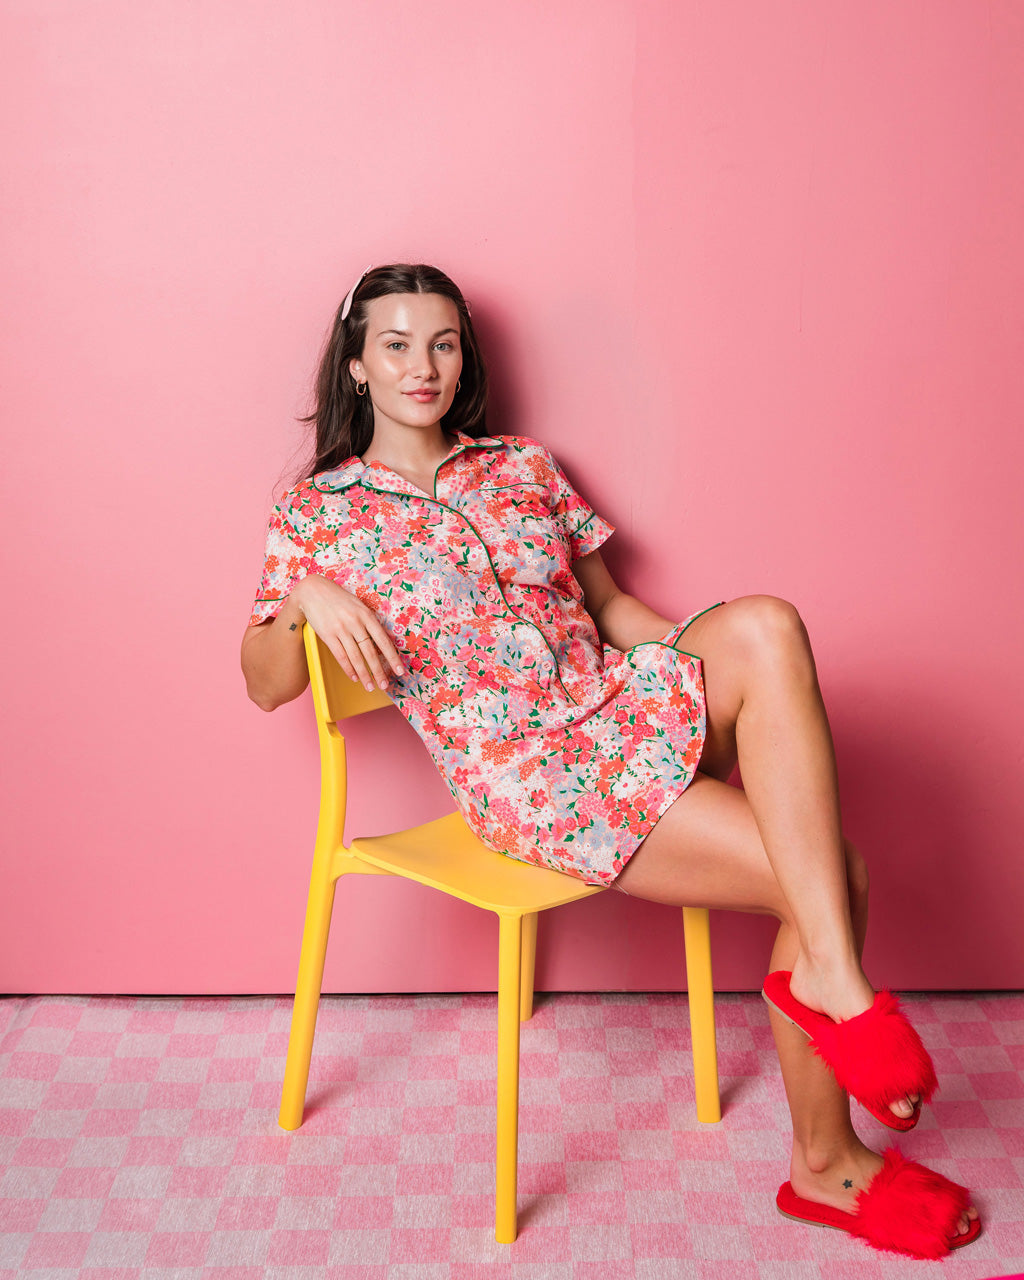 woman wearing bright floral pajama dress with red fuzzy slippers sitting on a yellow chair